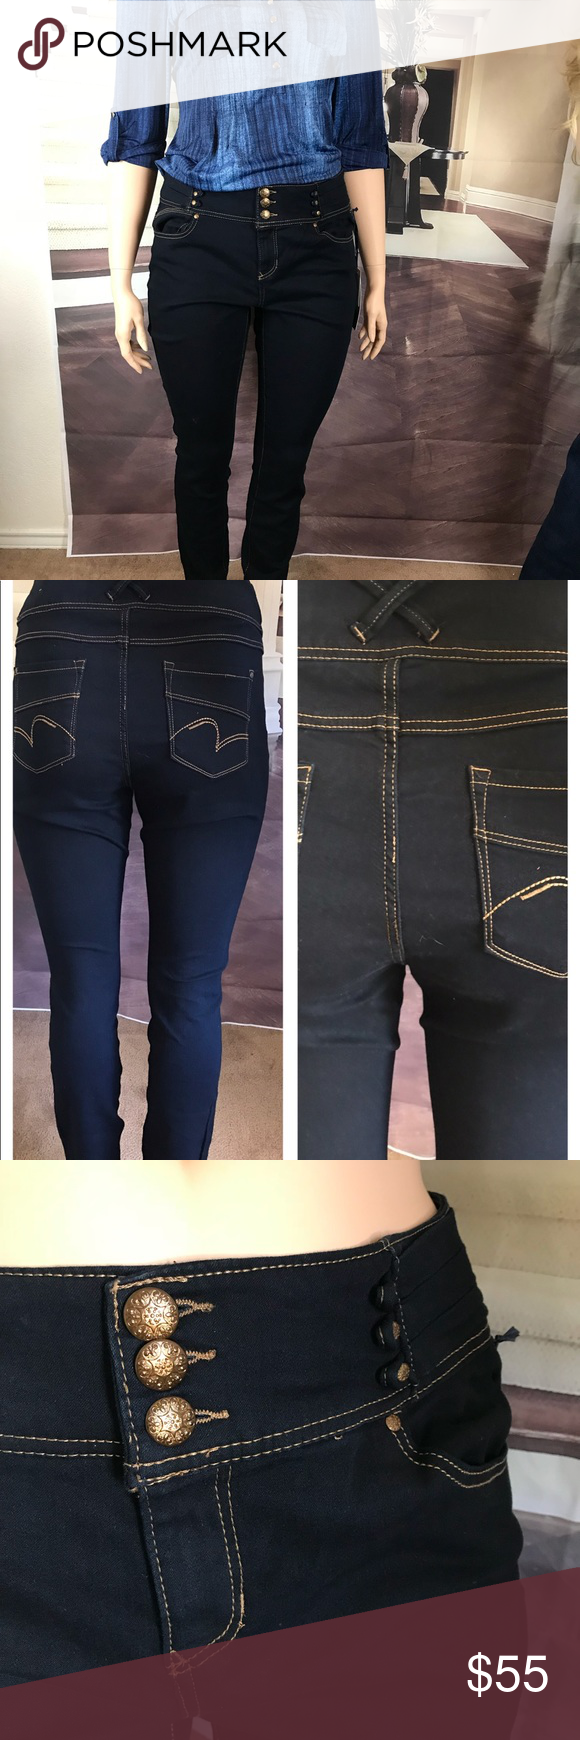 529a69f6239d0d Shop Women's indigo Fusion Blue size 18 Skinny at a discounted price at  Poshmark. Description: These brand new with tags Jeans have 4  pockets-inseam is 29 ...